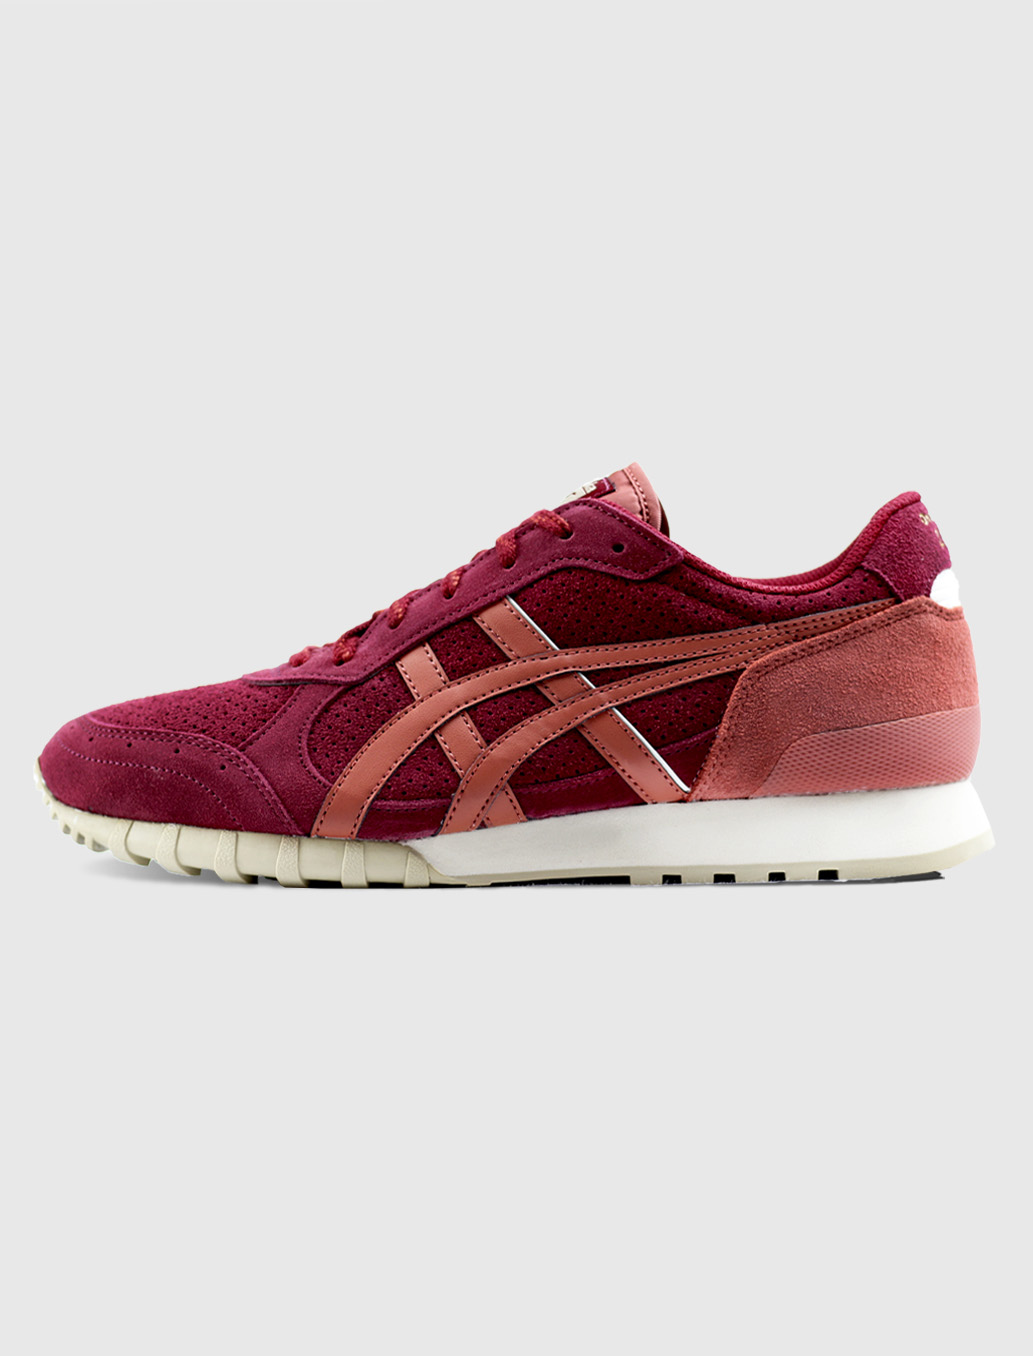 Onitsuka Tiger Colorado '85 burgundy/red taba